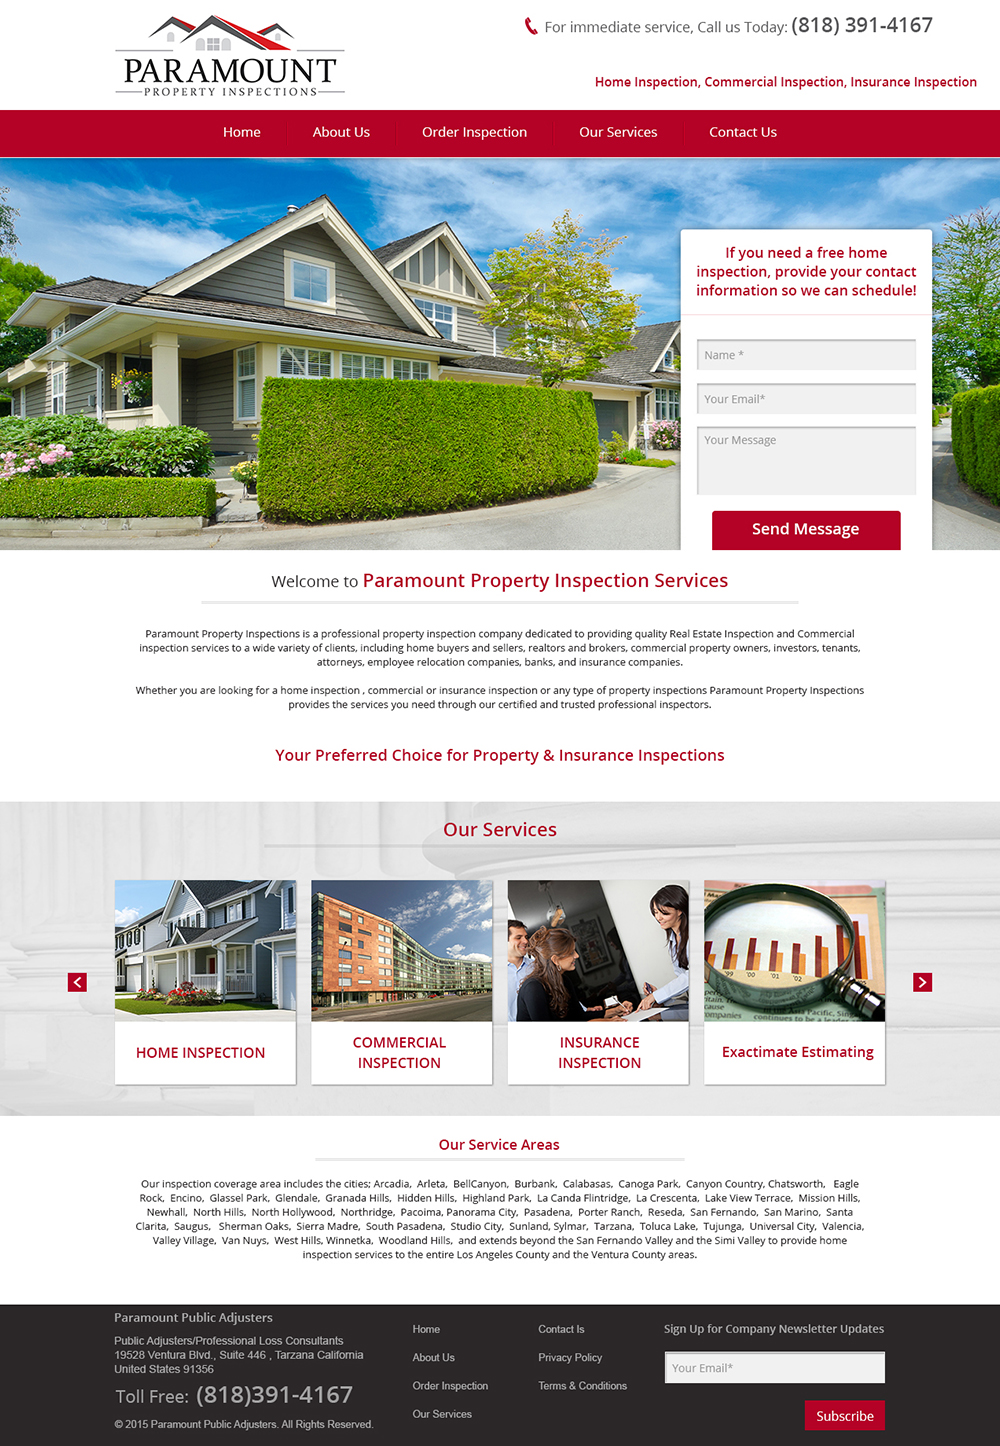 Superbe Web Design By Esolbiz For This Project | Design: #5722985